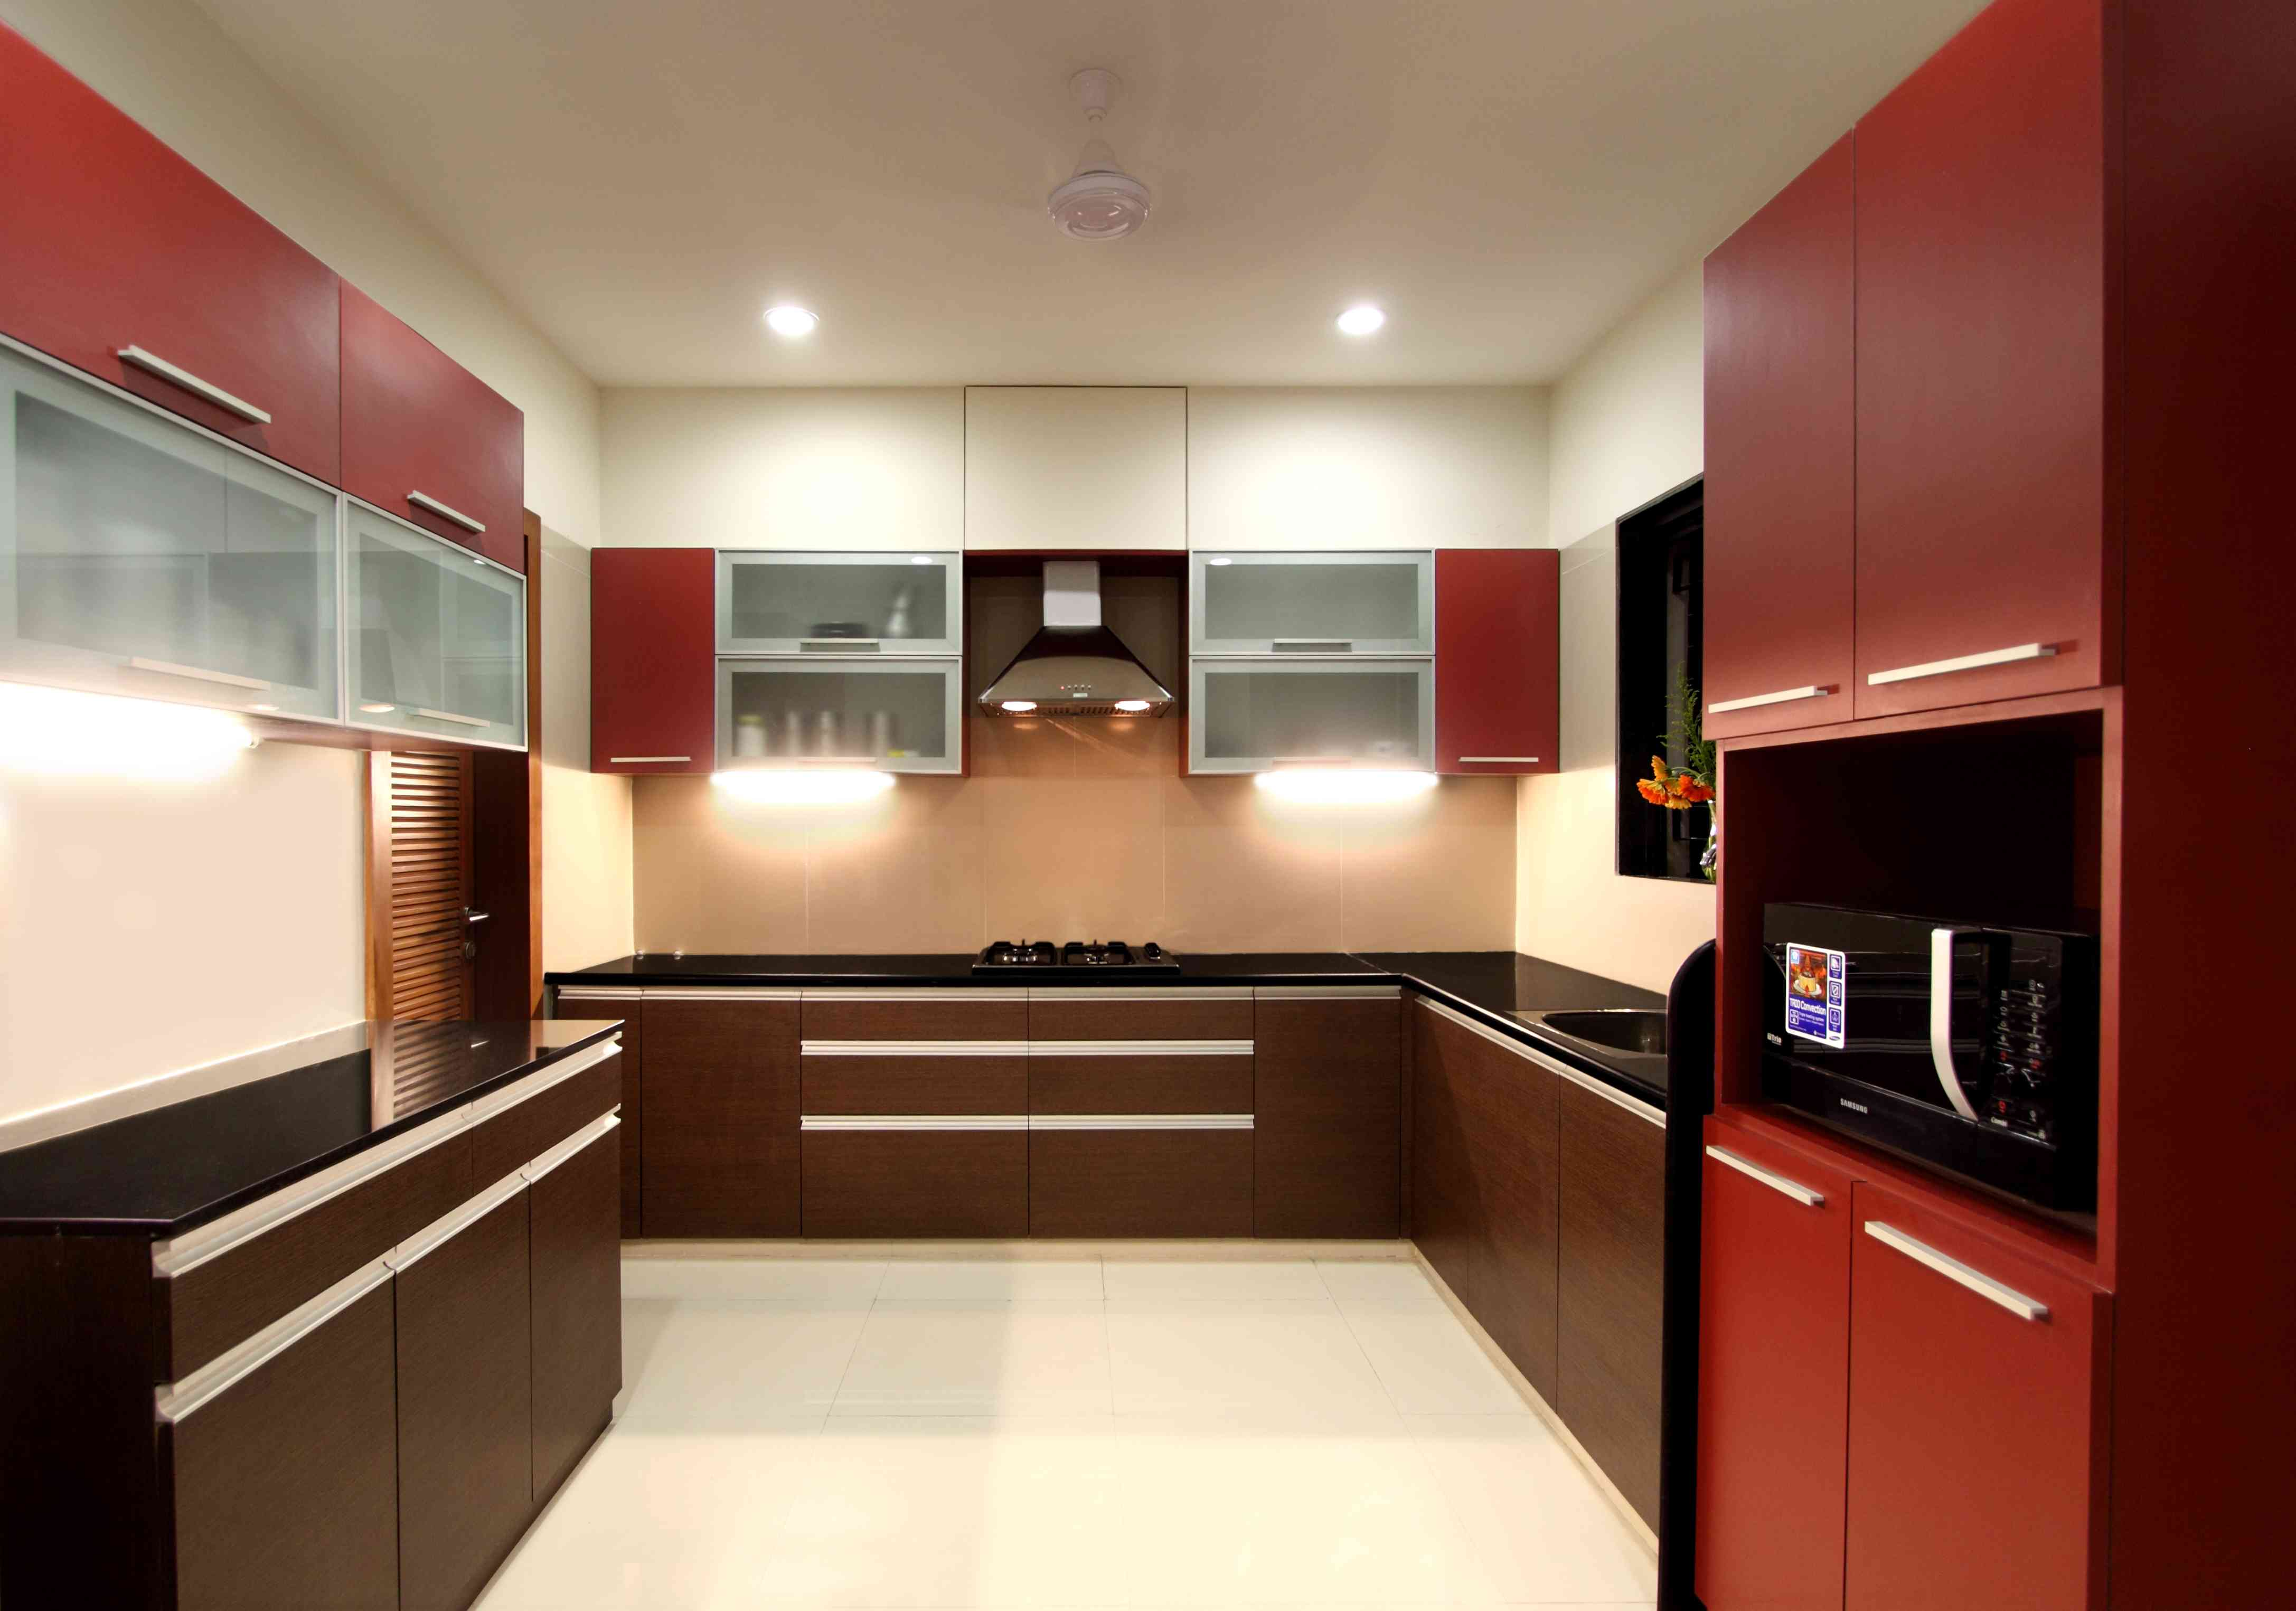 Modern kitchen design ideas india modern kitchen Kitchen interior design